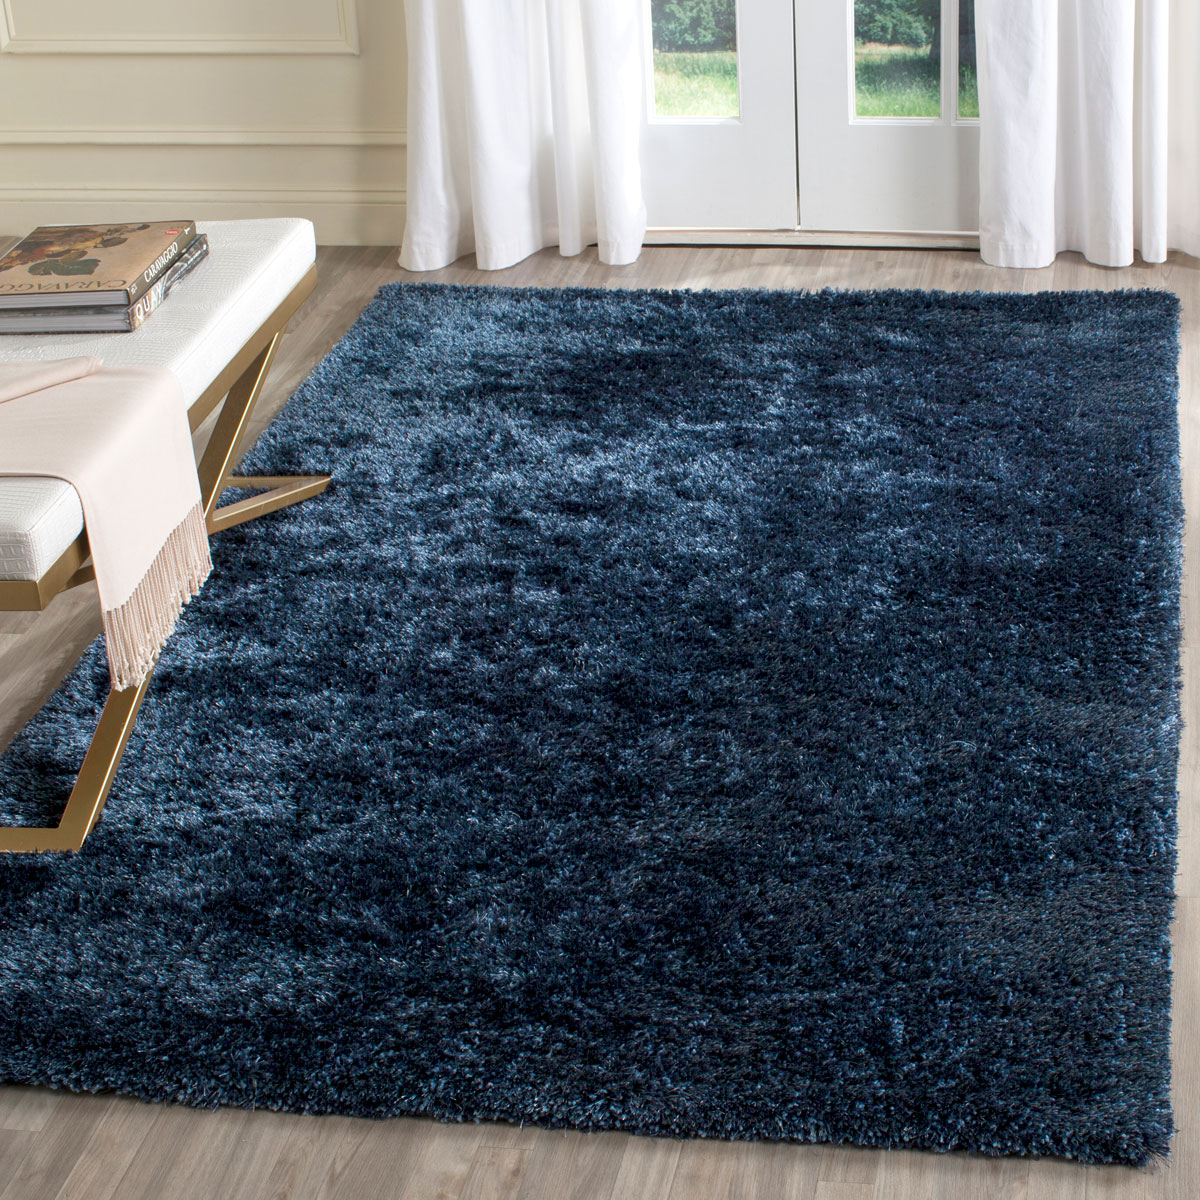 Blue Shag Rug Plush Navy Blue Shag Toronto Collection Safavieh